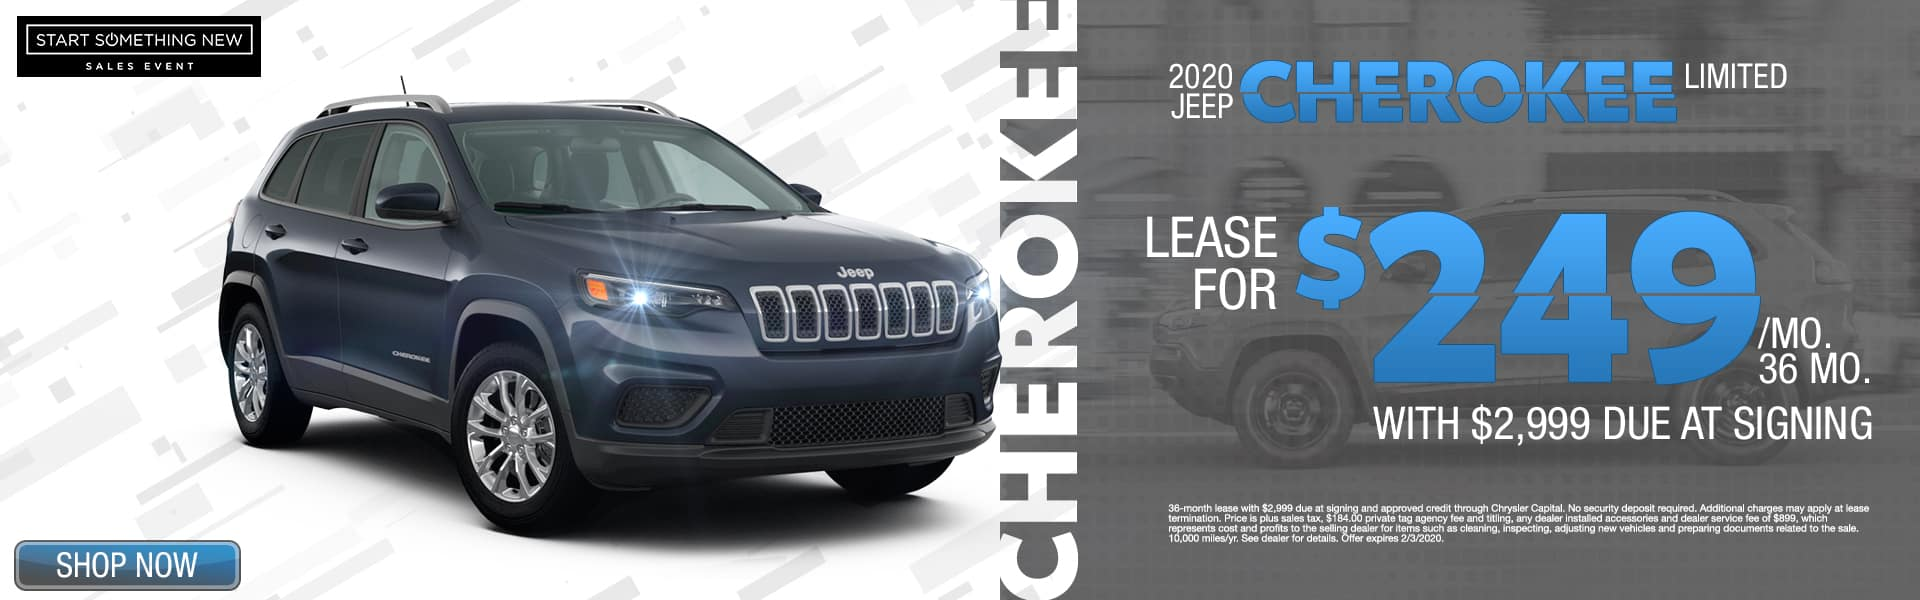 2020 Jeep Cherokee Limited | Lease For $249/Mo For 36 Months With $2,999 Due At SIgning